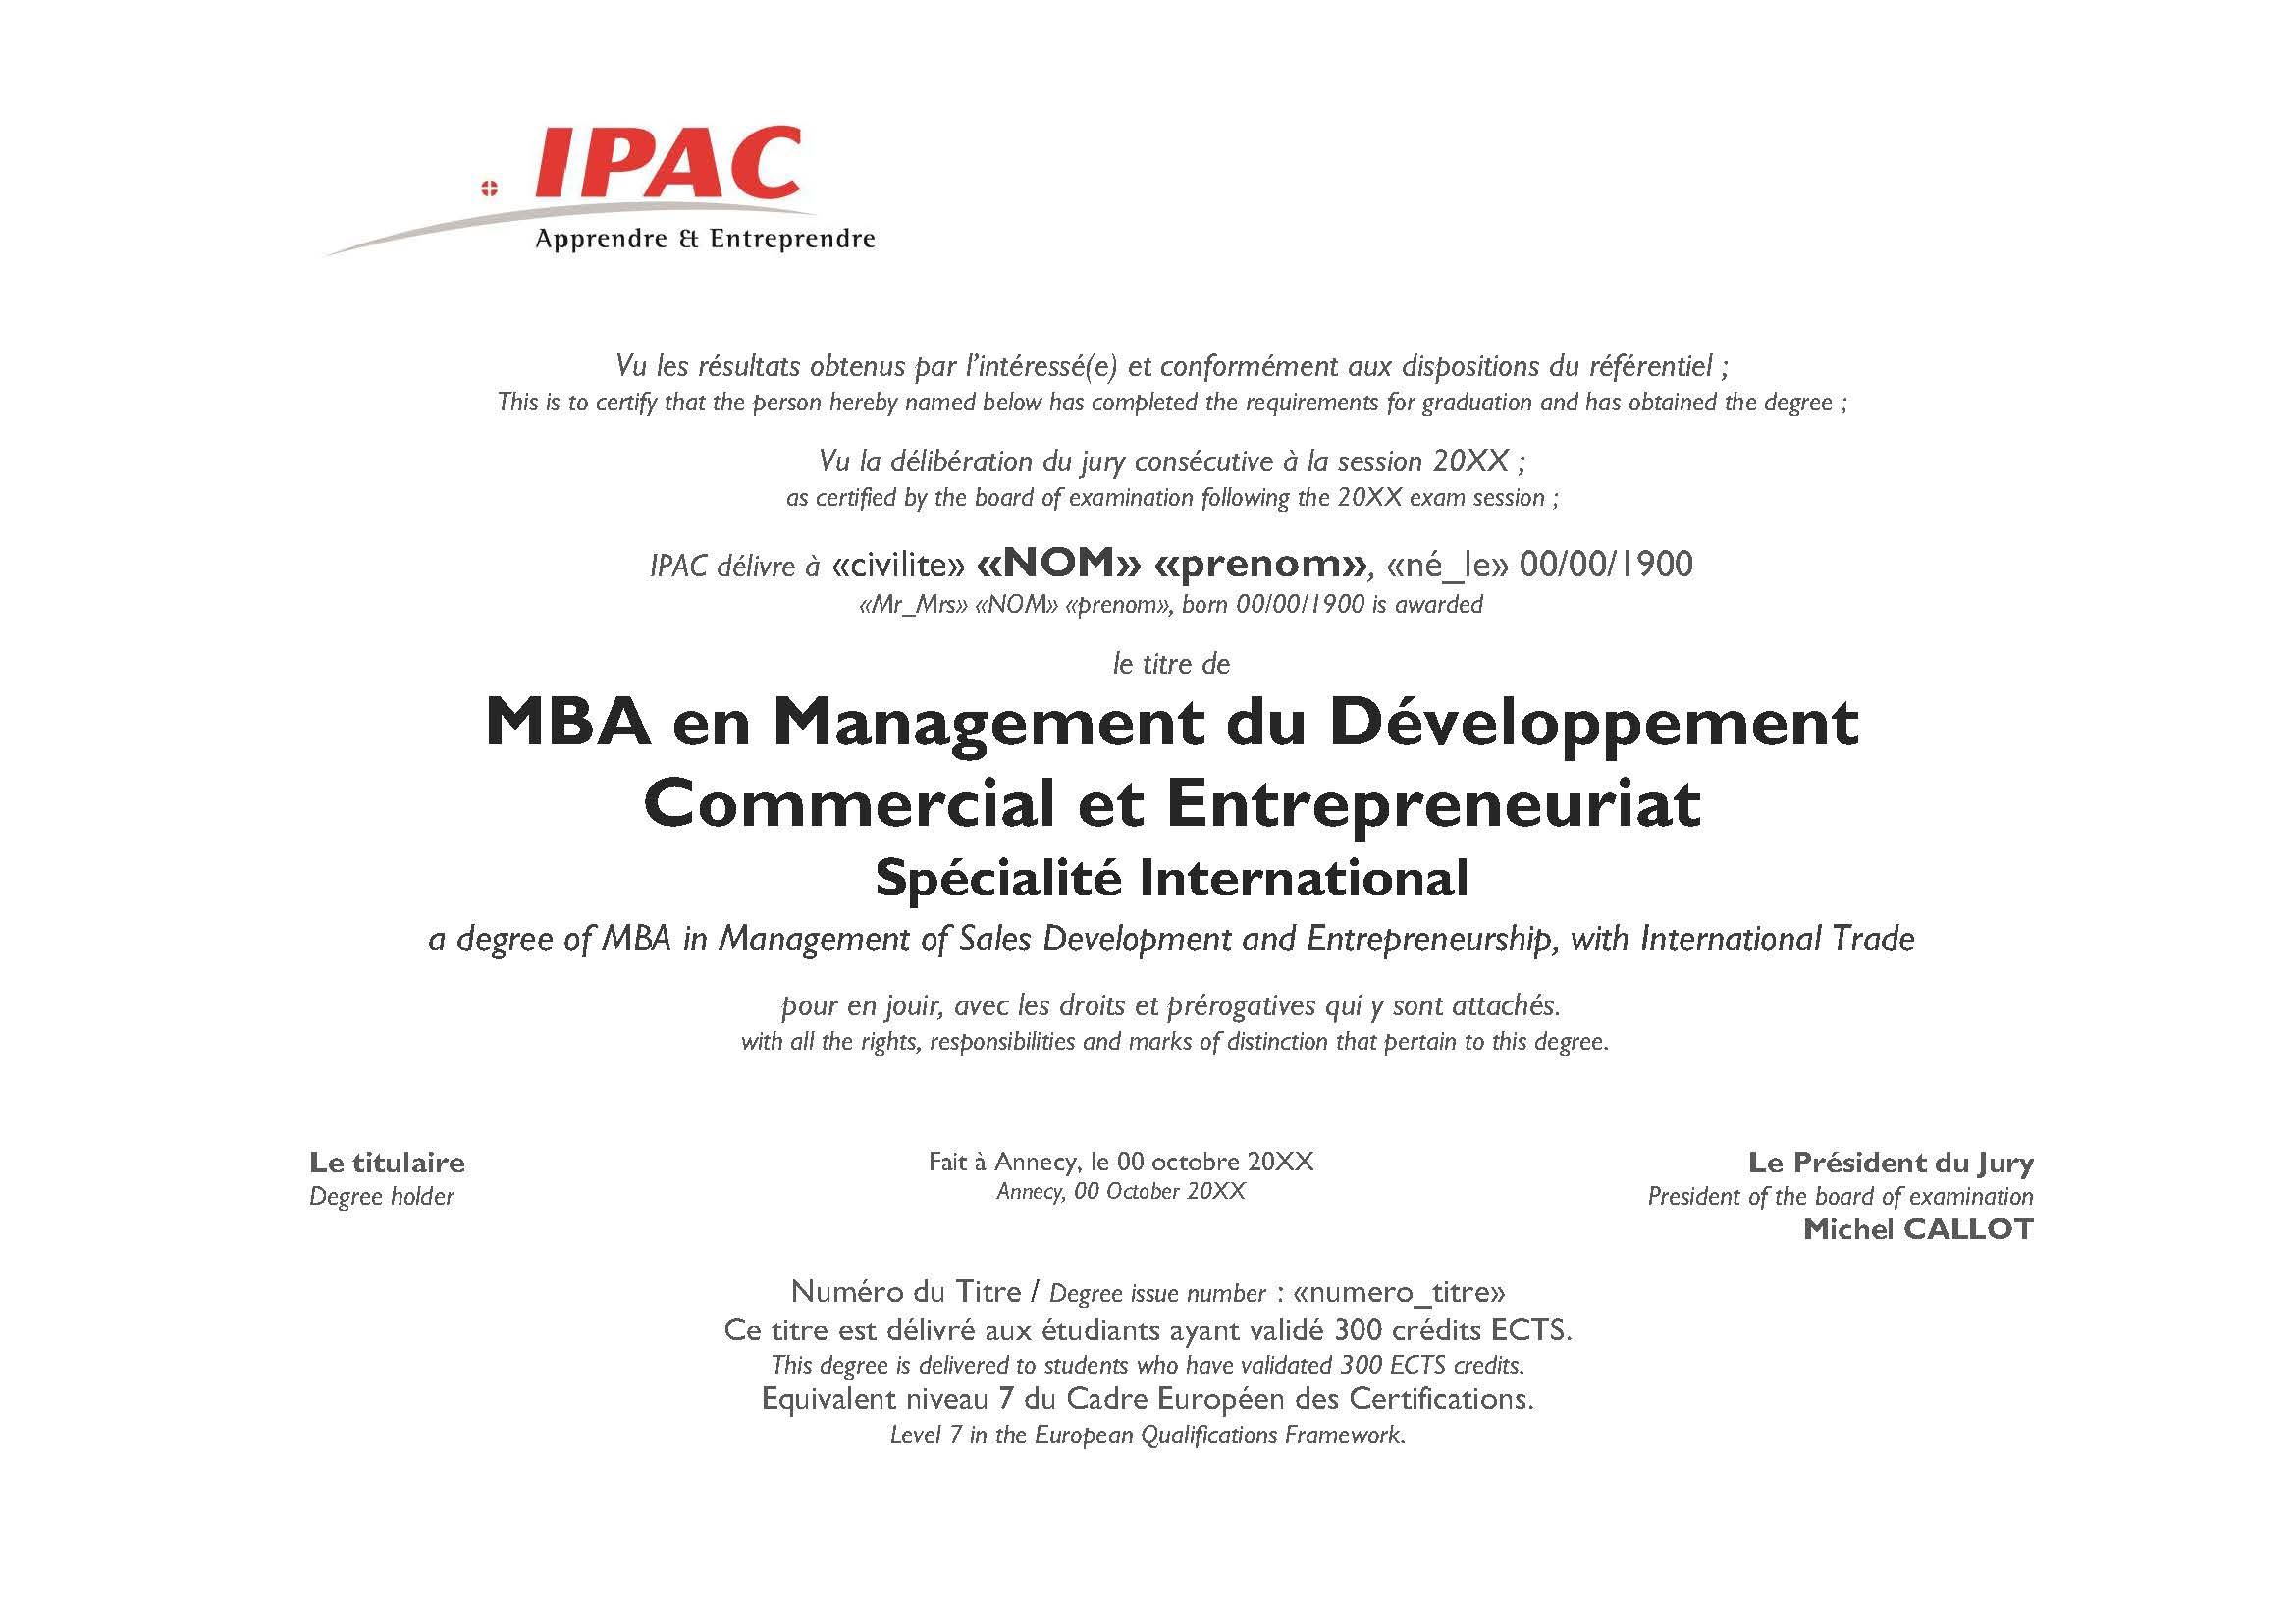 mba jpg  invited tutors from therefore attendees are awarded international МВА master of business administration degree diplomas recognised in foreign